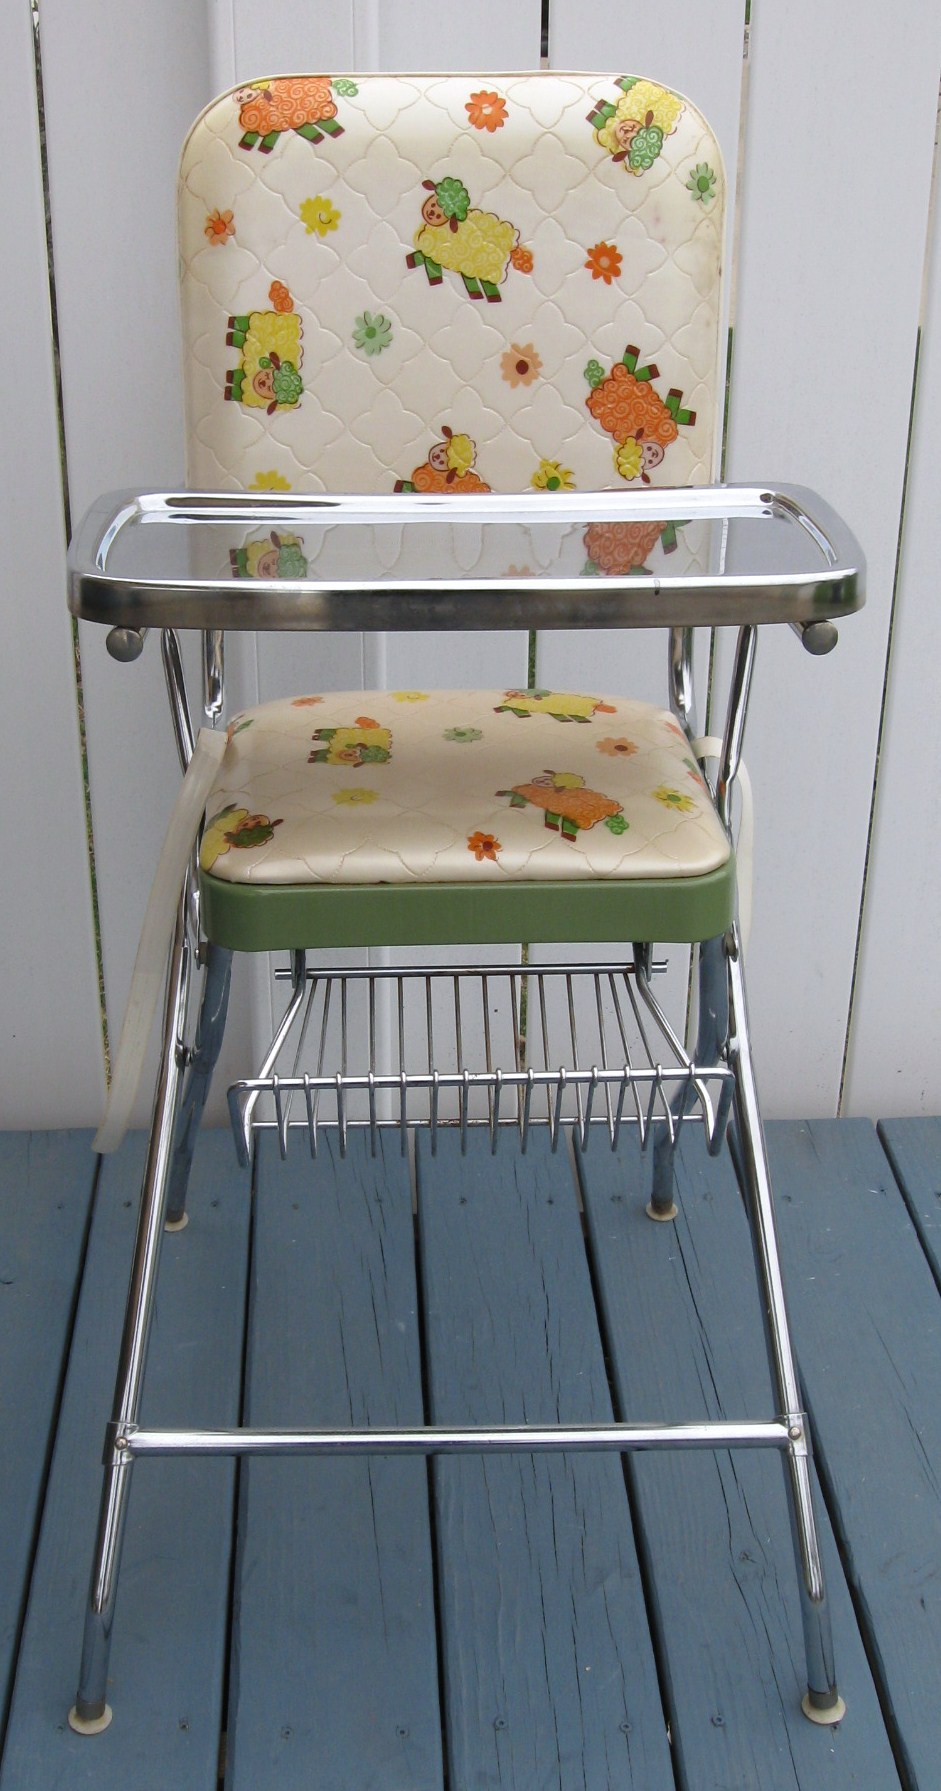 Chicco polly se high chair perseo modern high chairs and booster - Vintage Comfort Line Metal Vinyl High Chair